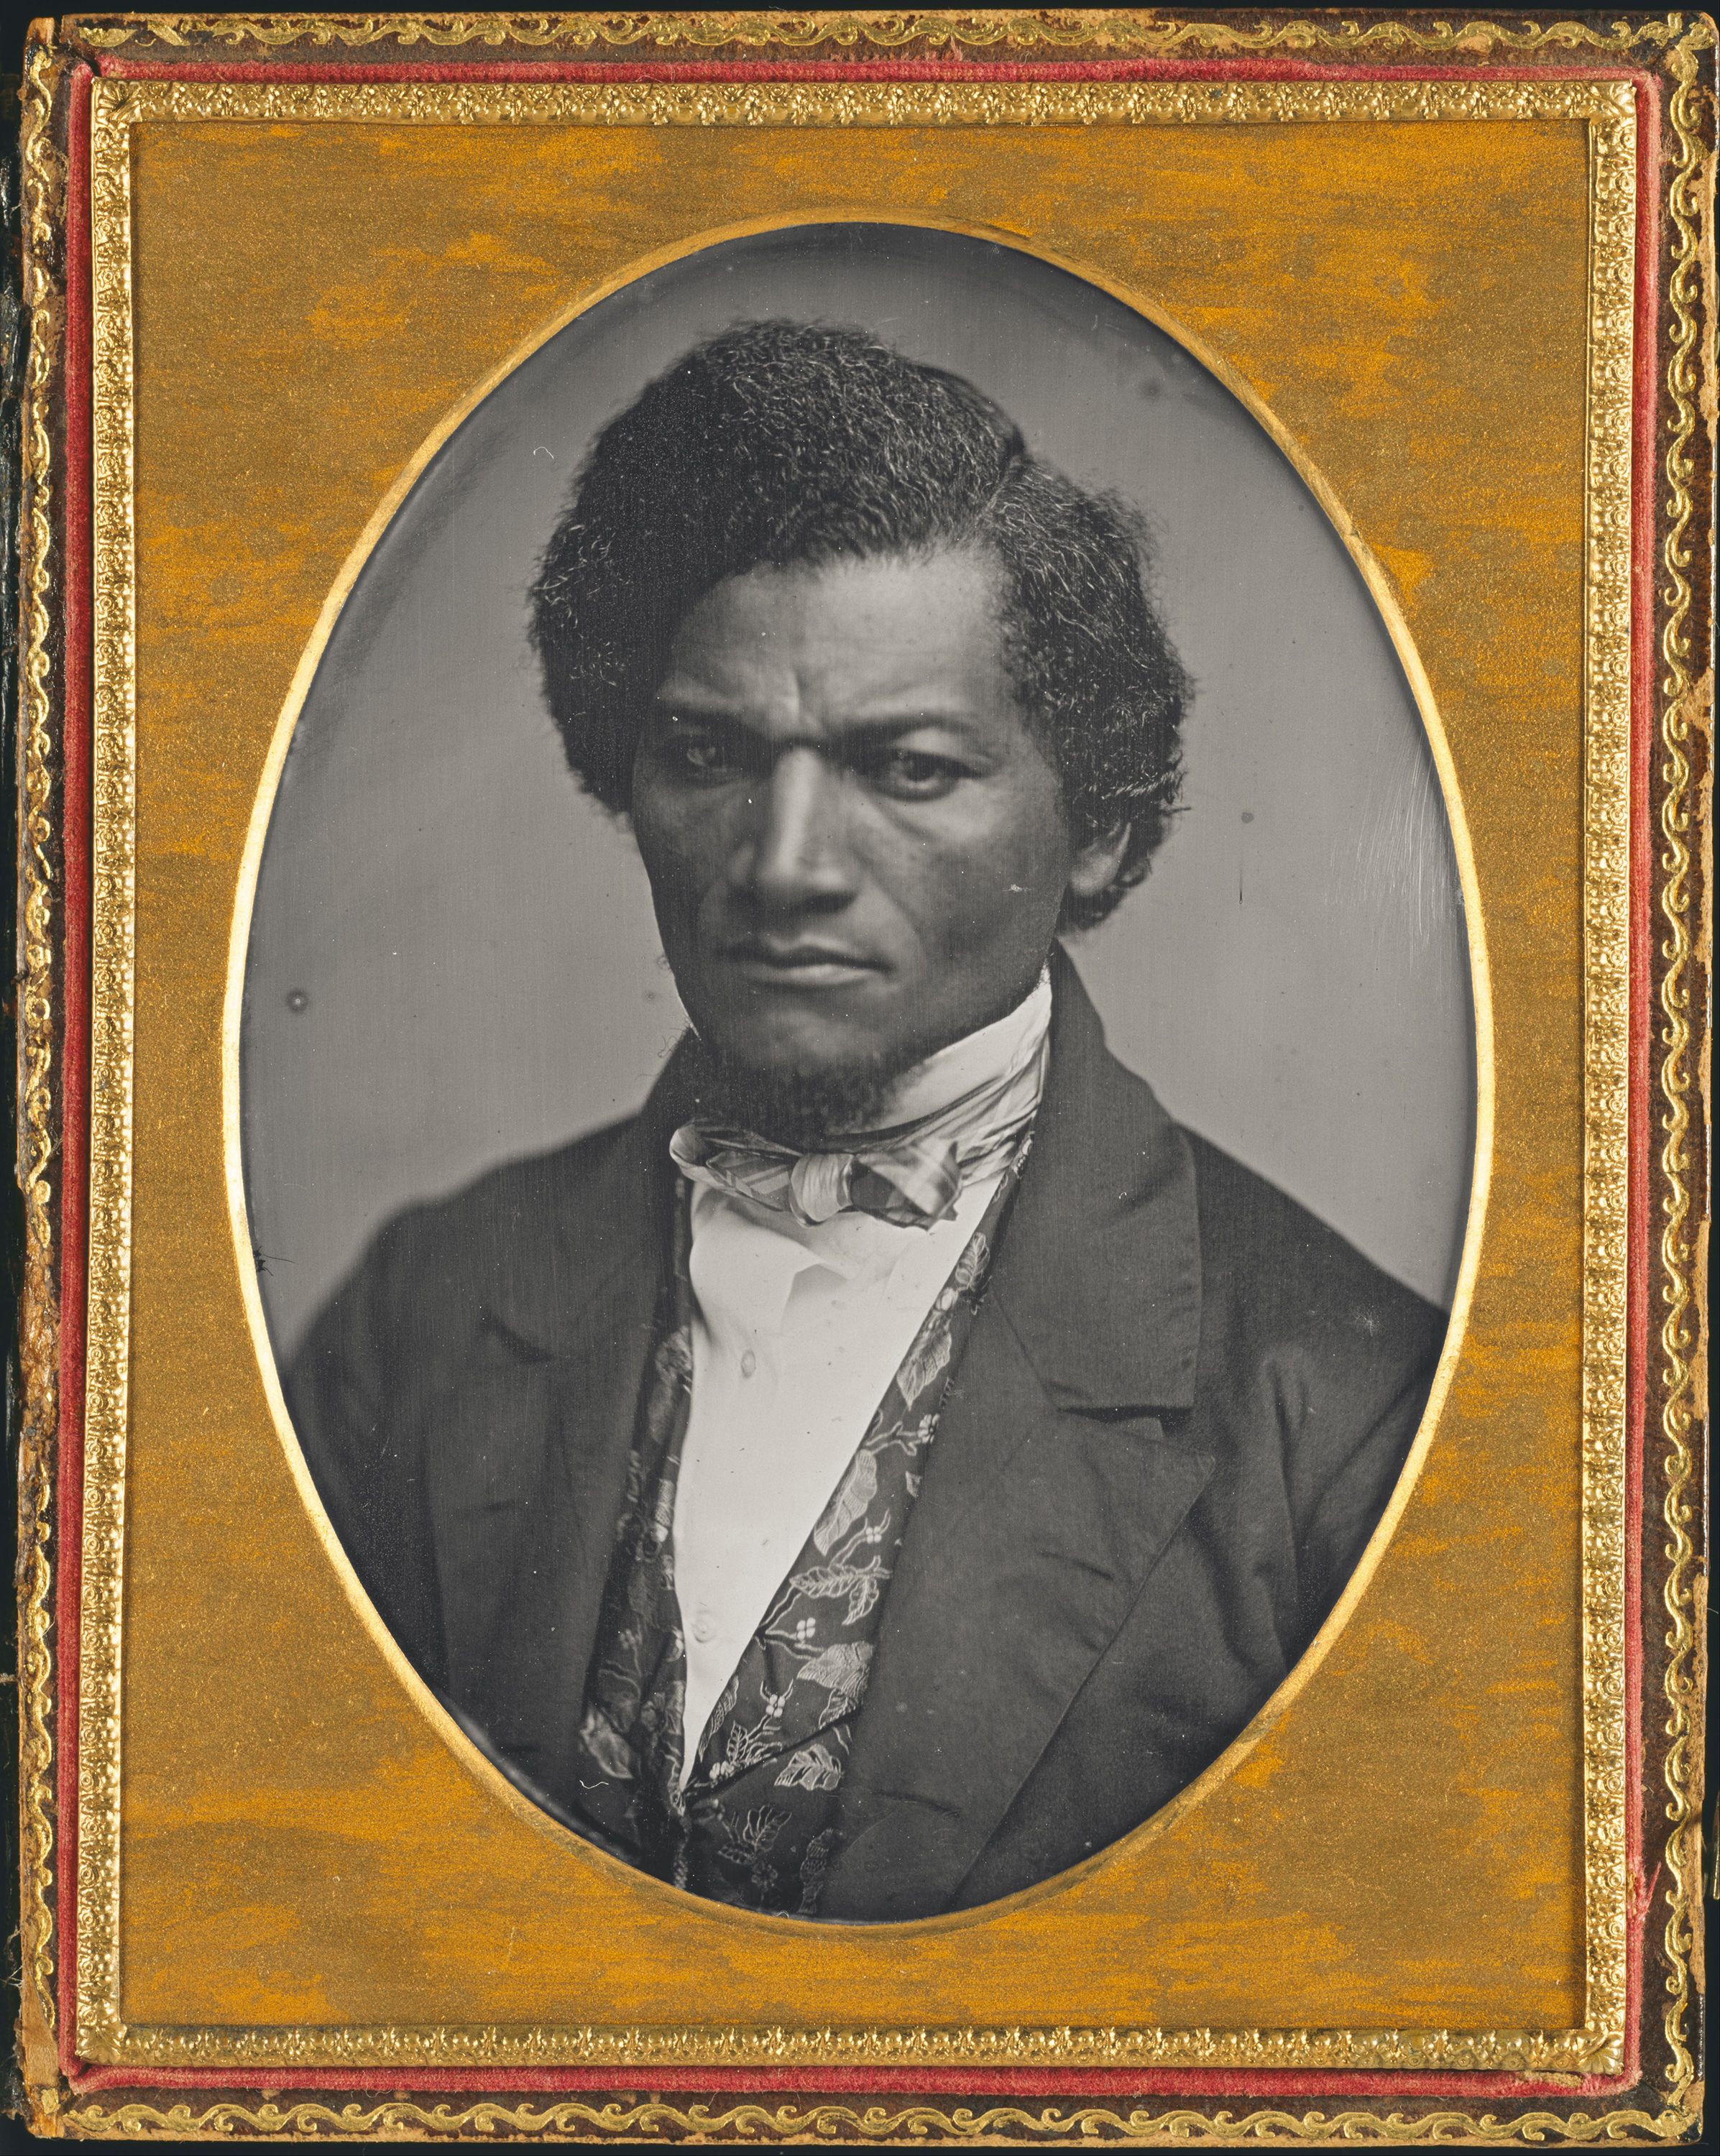 frederick douglass and richard wright comparison paper bet Visit the frederick douglass papers at the library of congress to view approximately 7,400 items (38,000 images) relating to douglass' life as an escaped slave, abolitionist, editor, orator, and public servant.